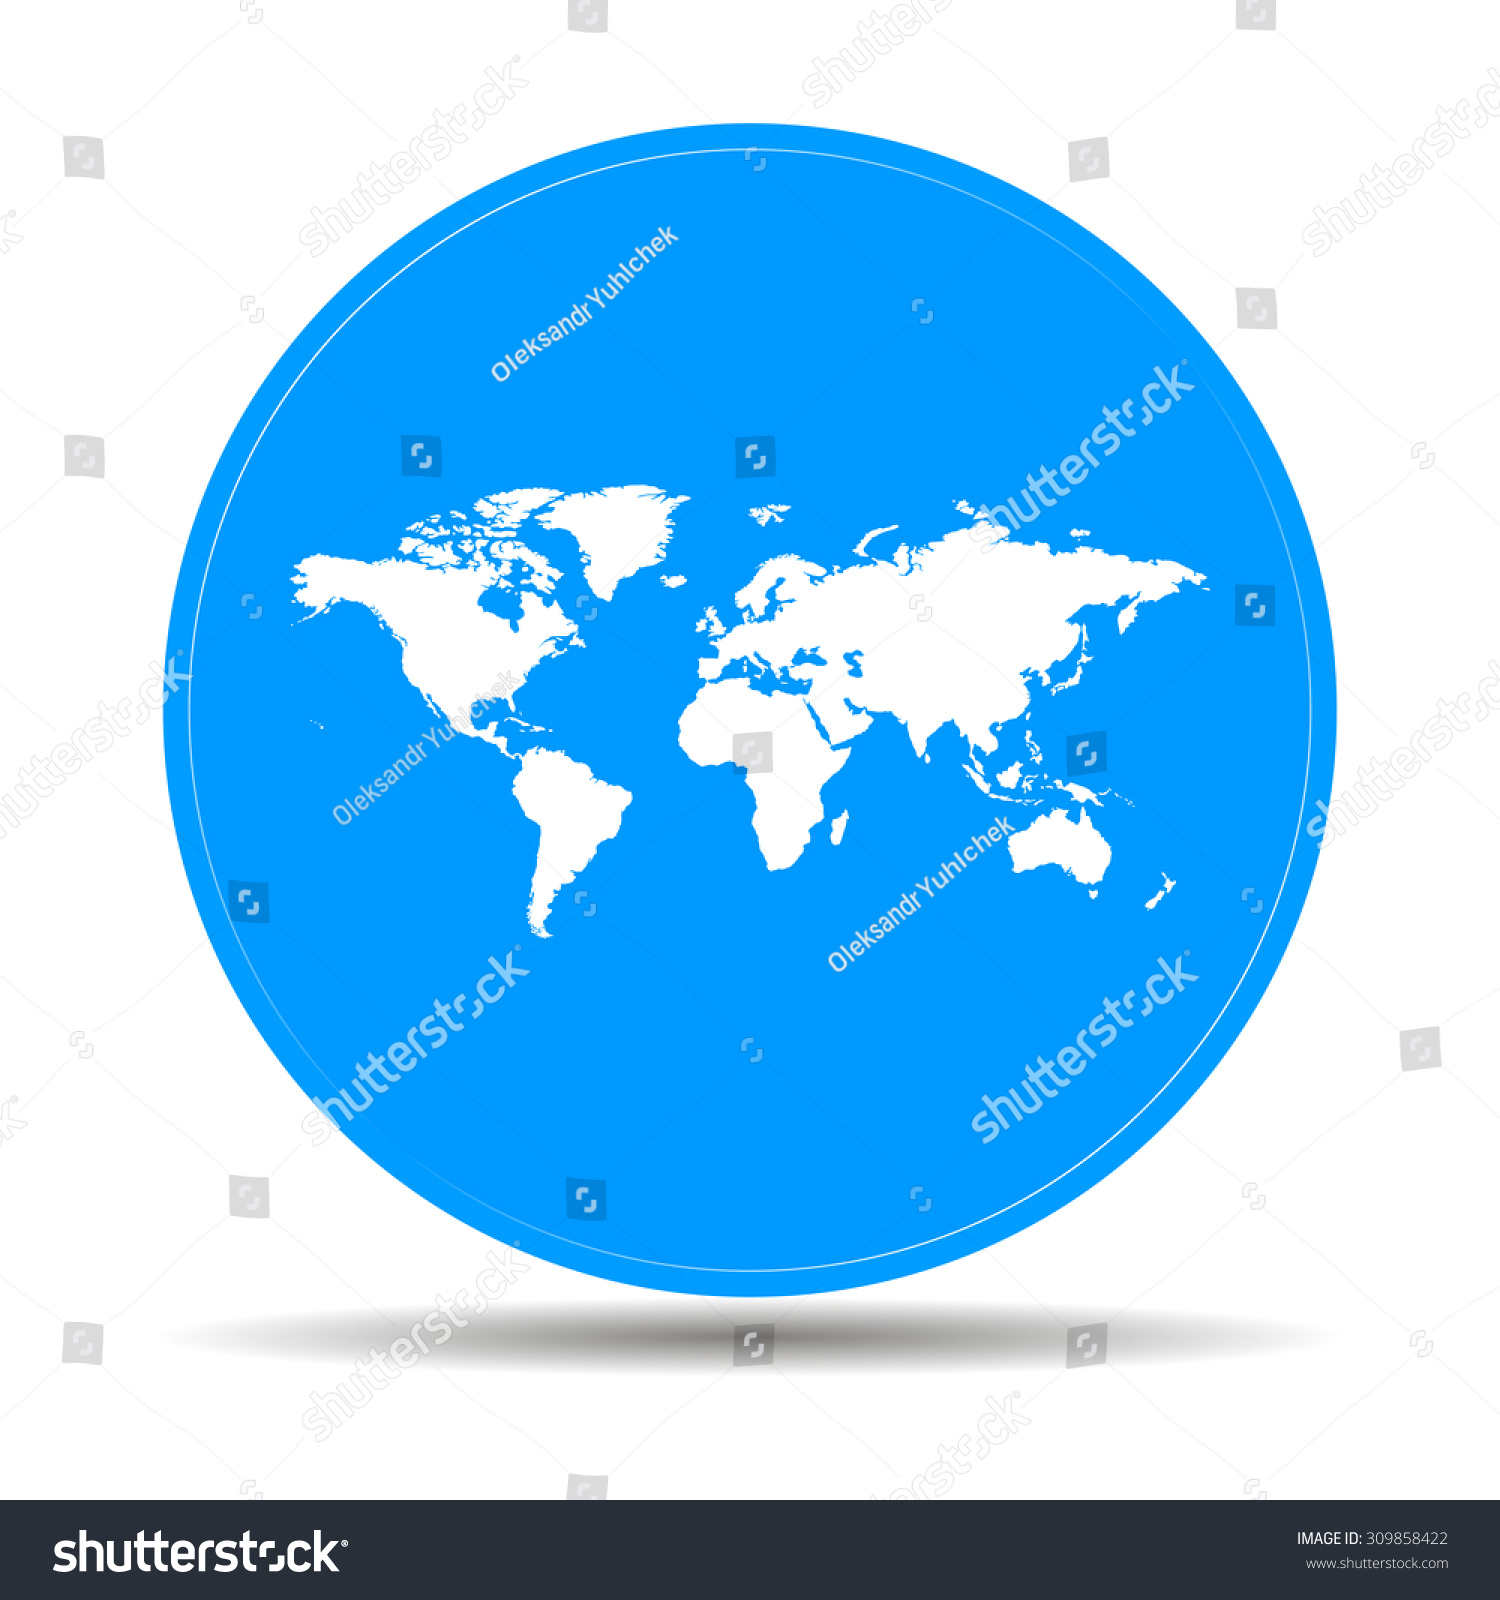 World map illustration flat design style stock vector 309858422 world map illustration flat design style eps 10 gumiabroncs Images